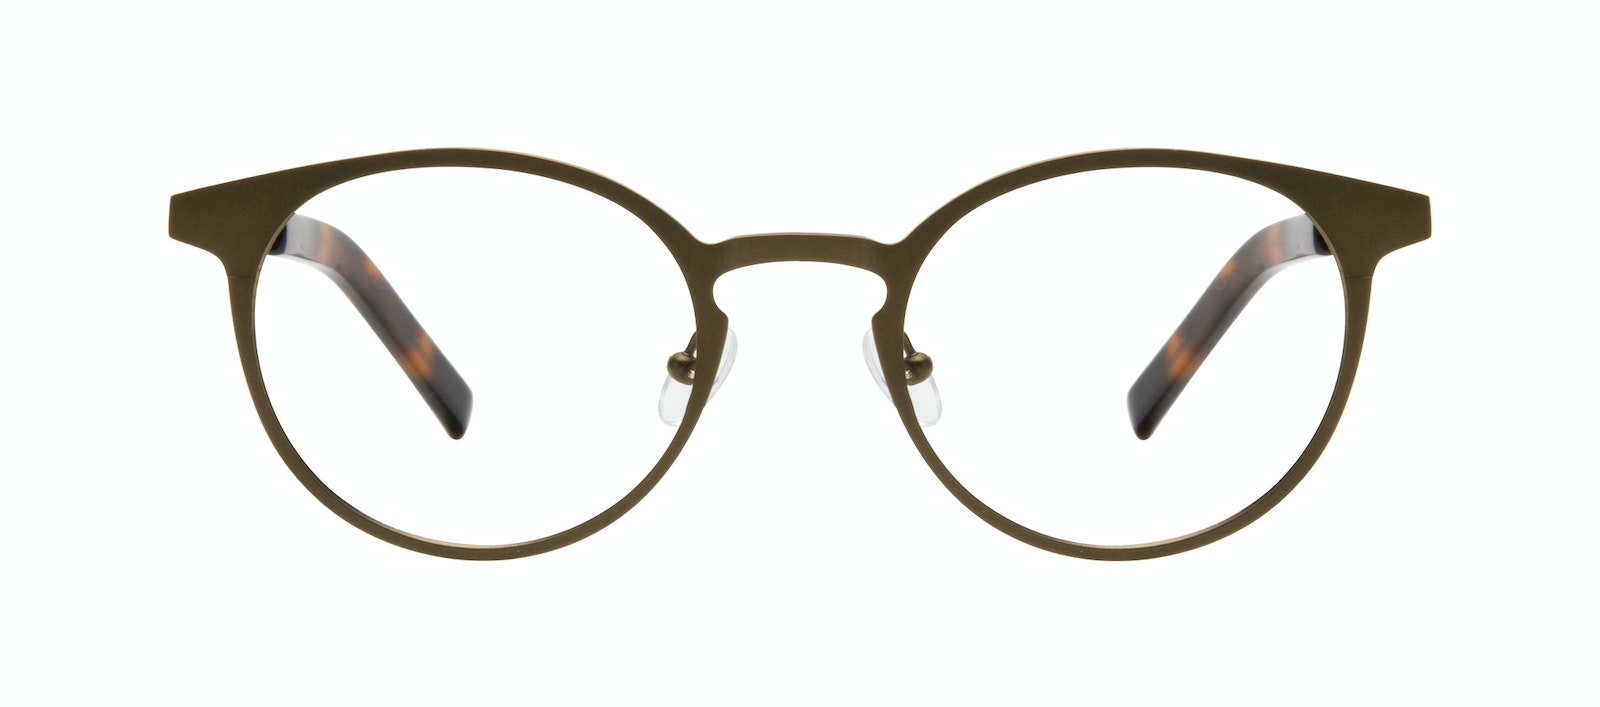 Affordable Fashion Glasses Round Eyeglasses Men Cut Khaki Front